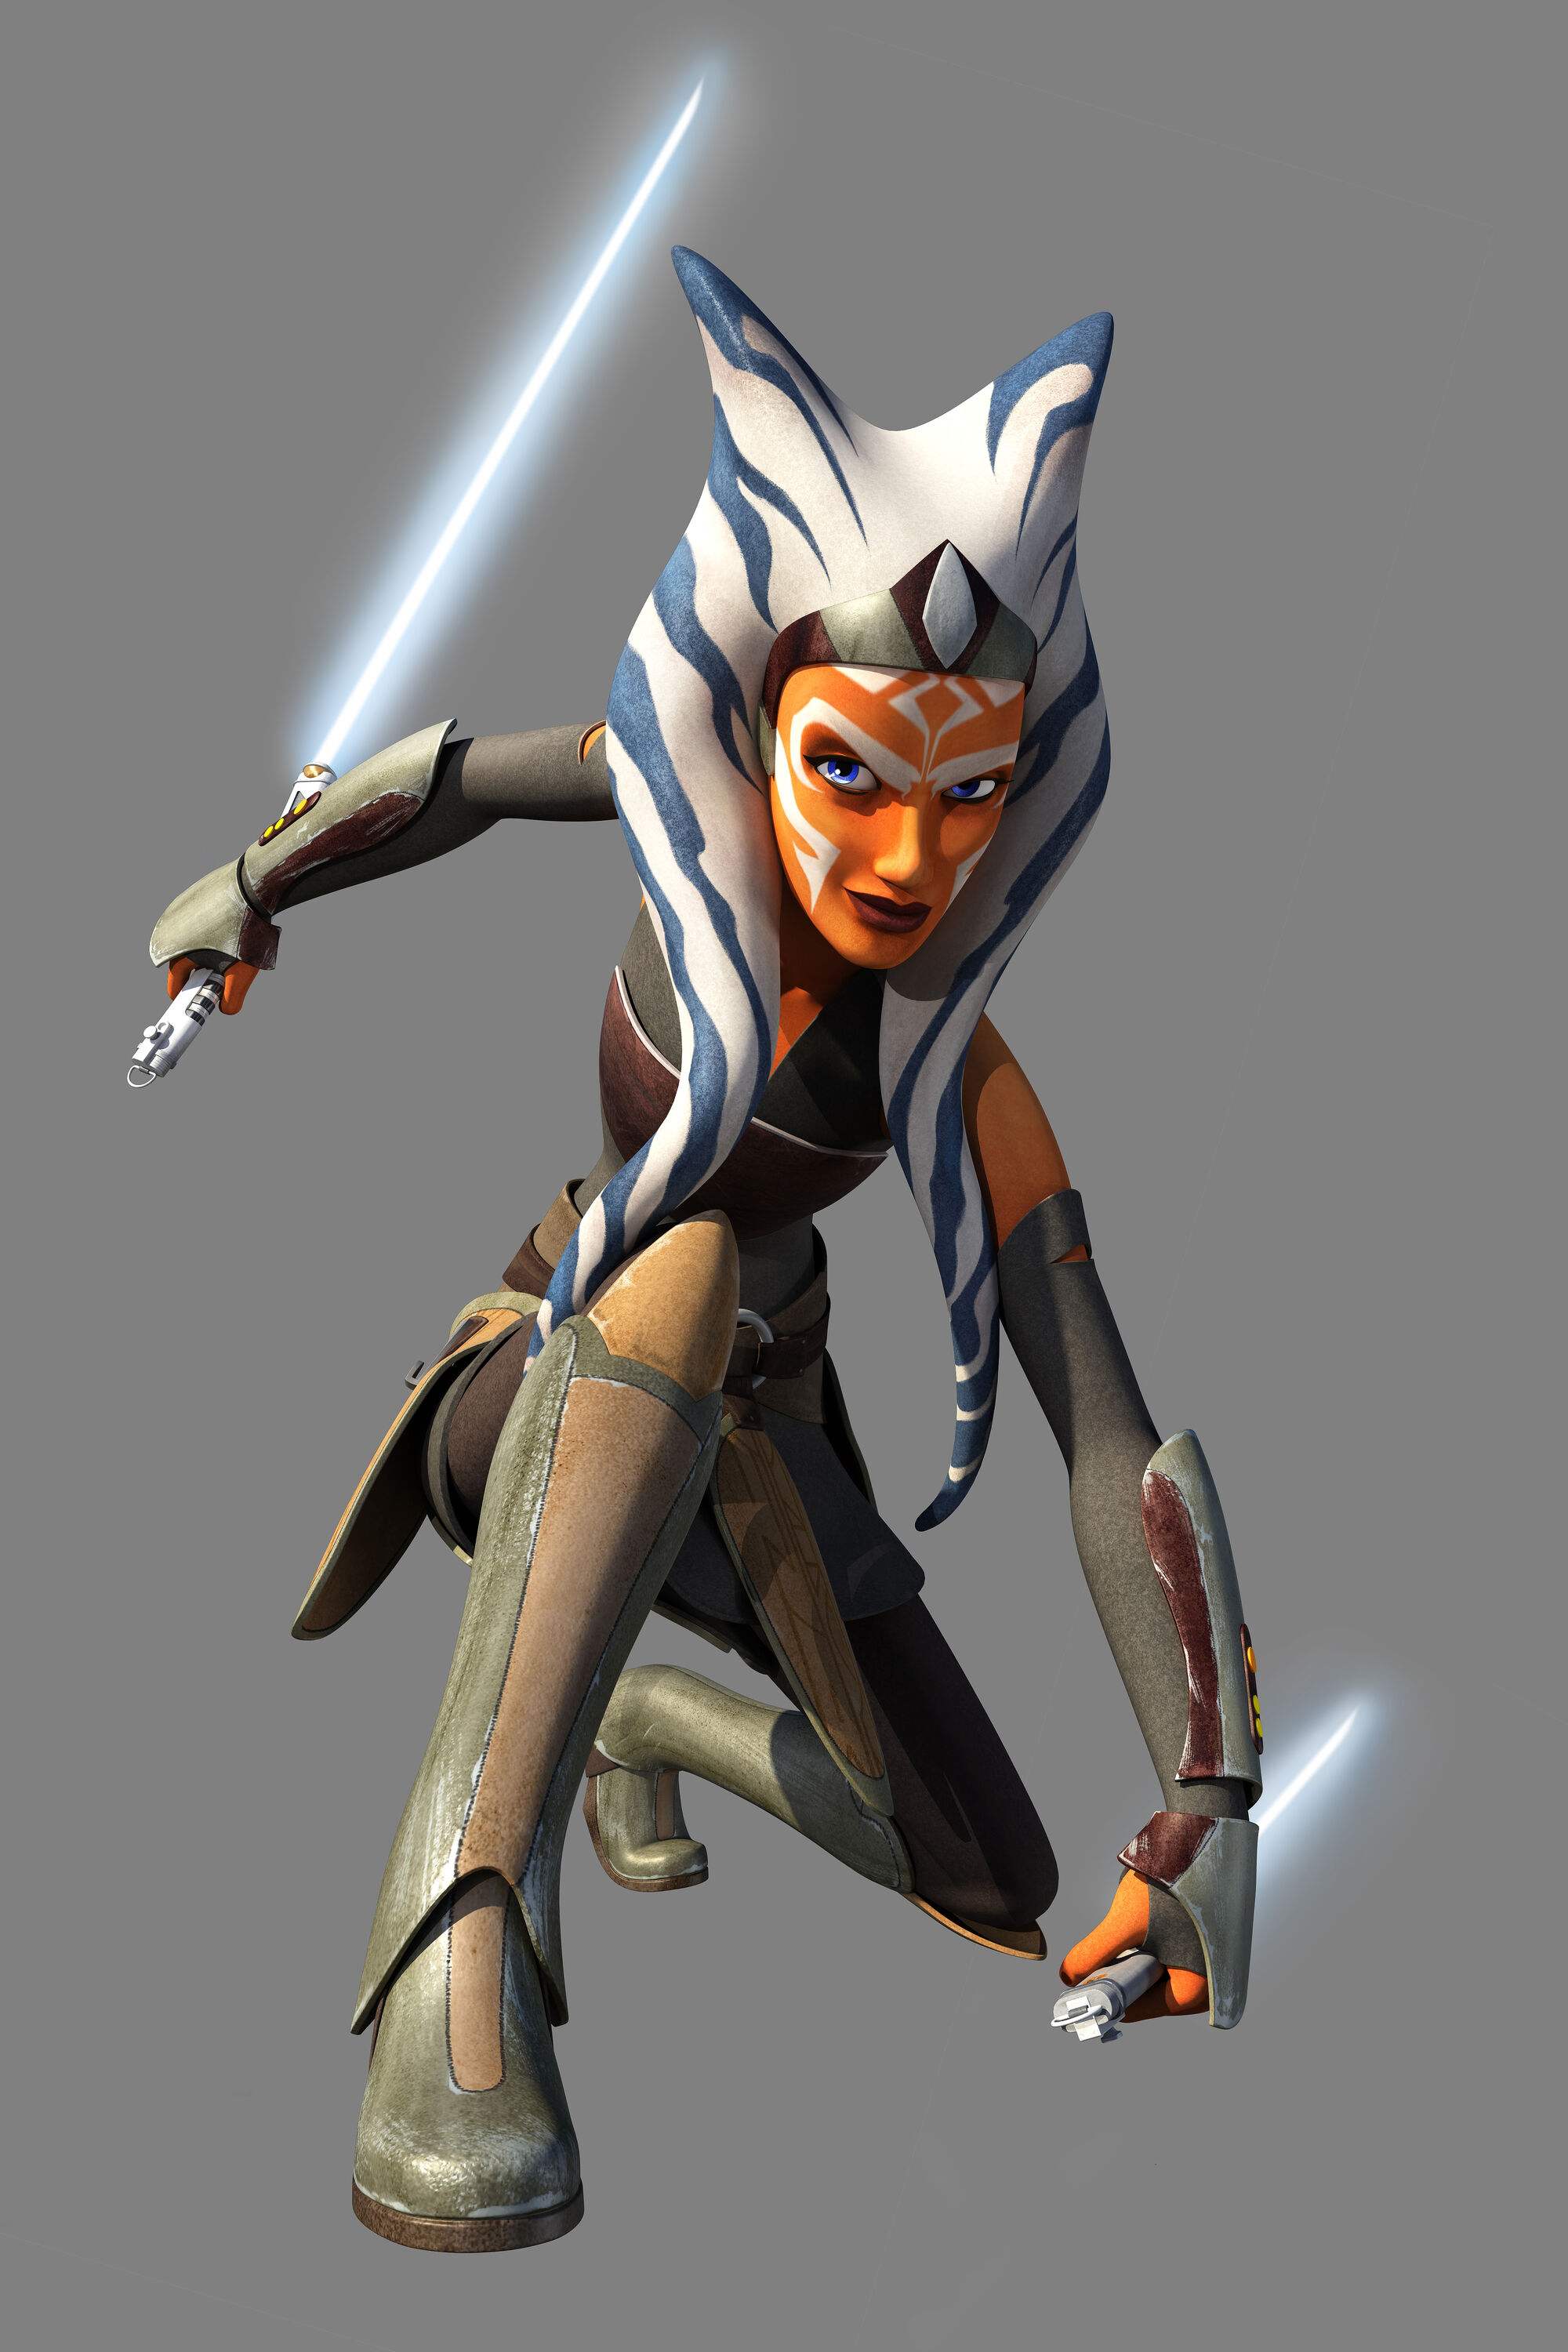 Star wars ahsoka nackt sex movies